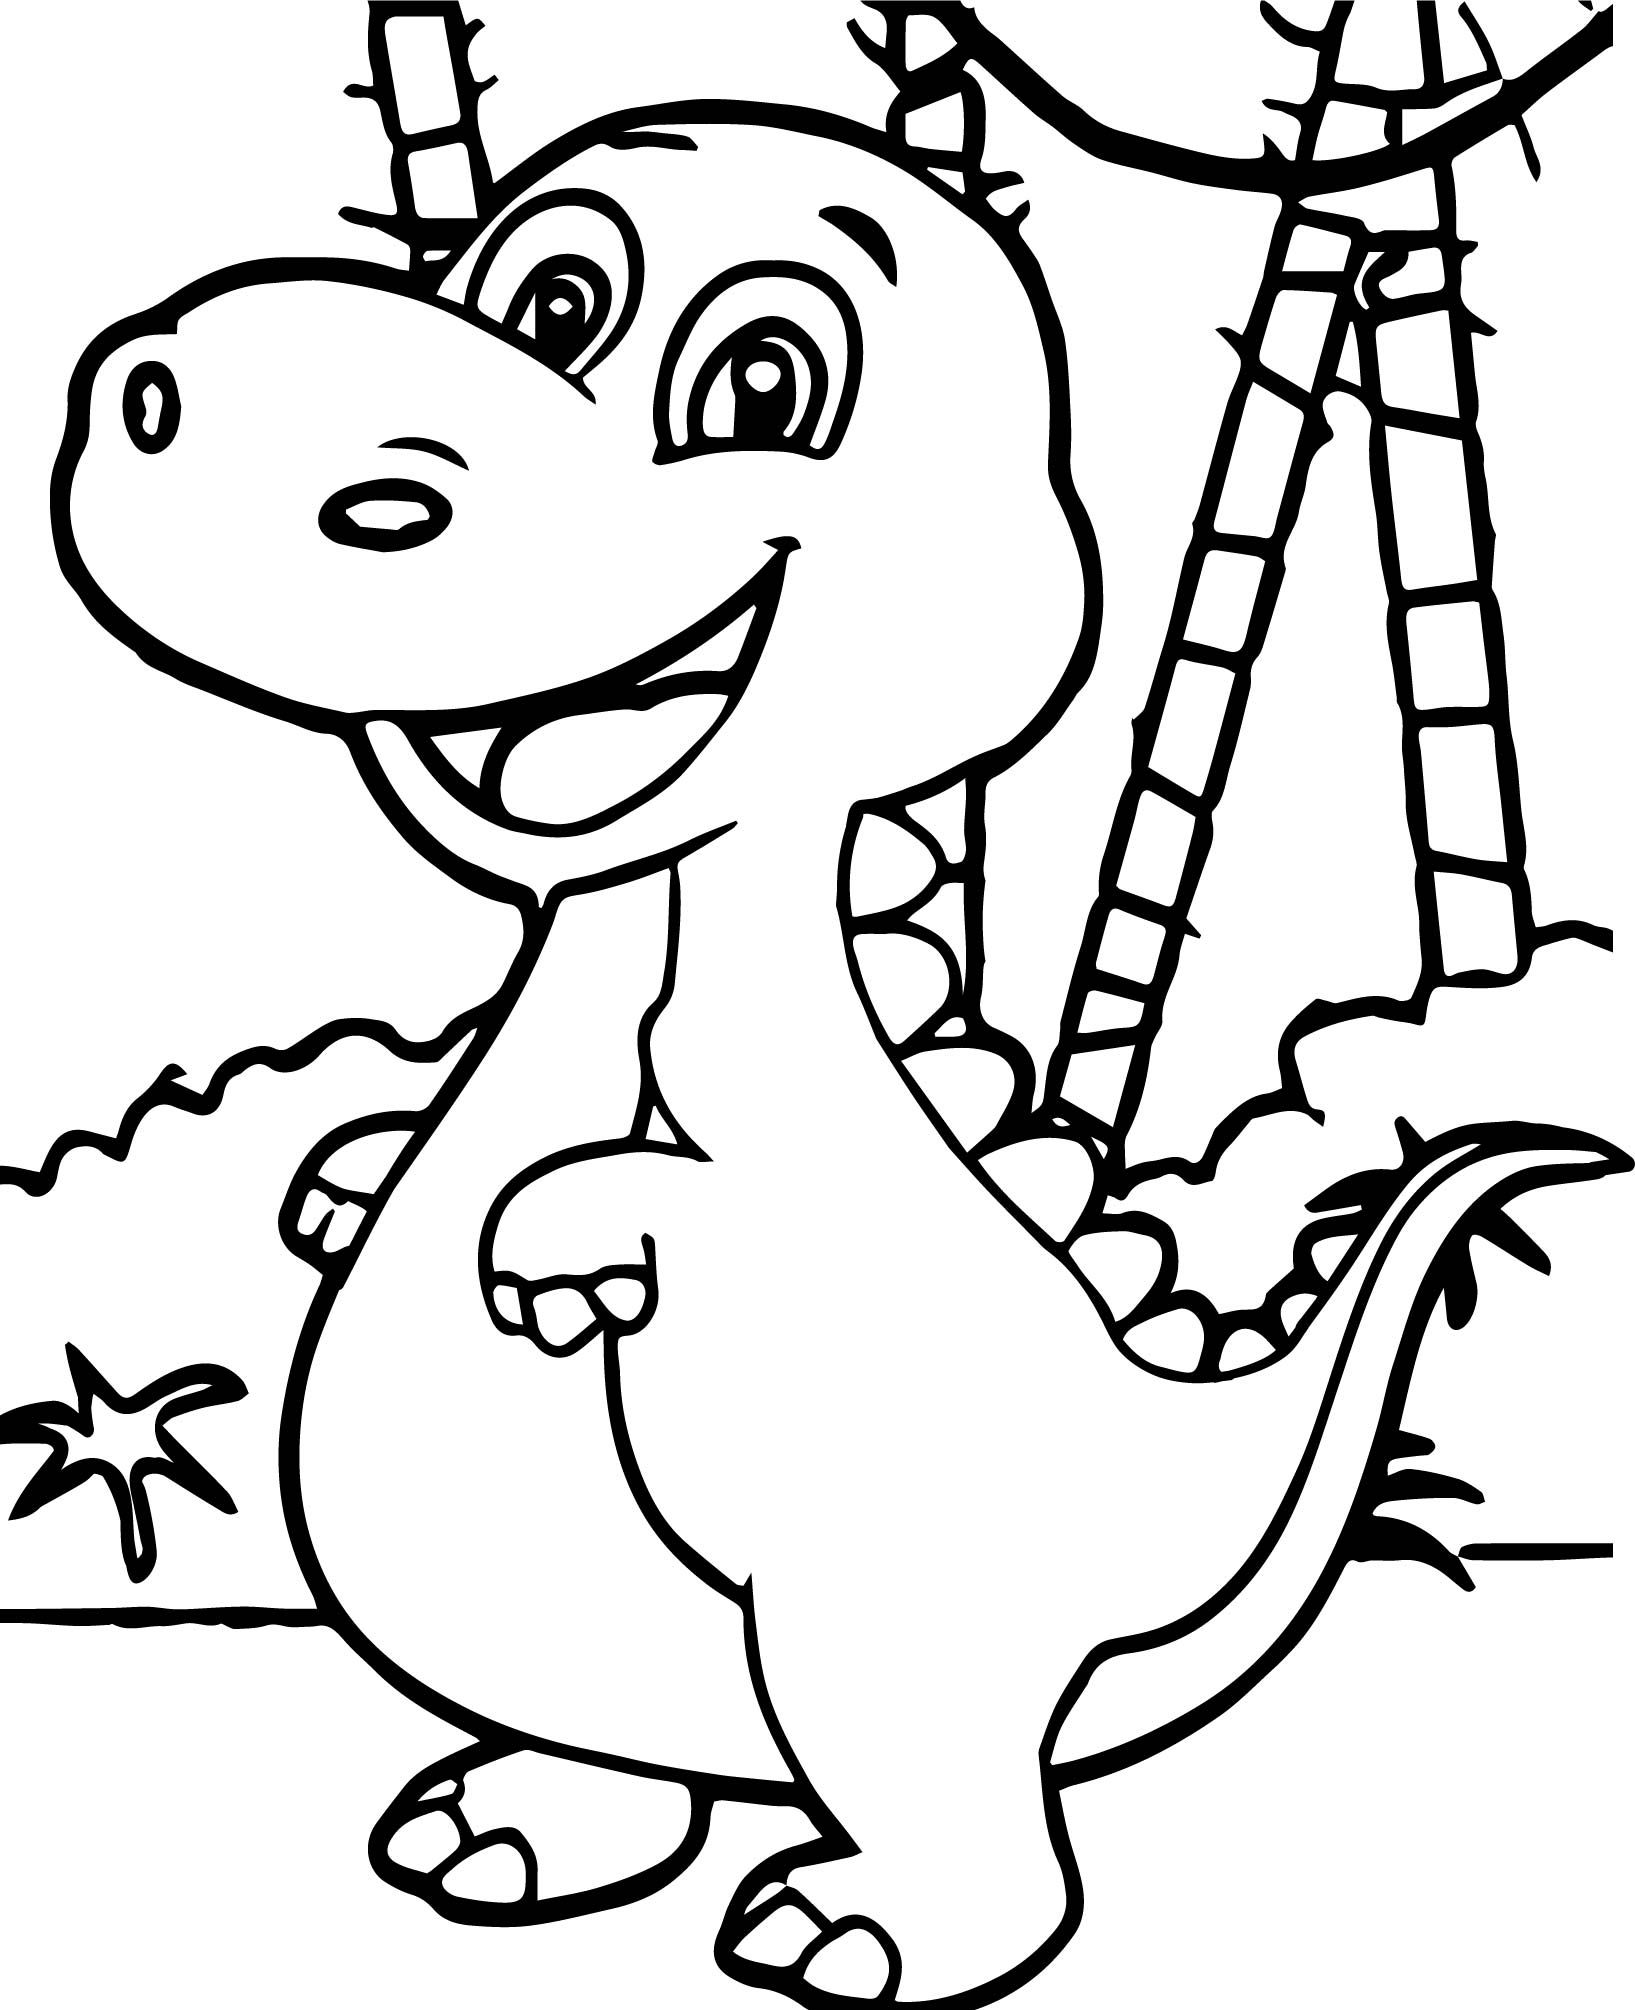 baby dinosaur coloring pages cute baby dinosaur coloring pages at getdrawings free baby dinosaur coloring pages